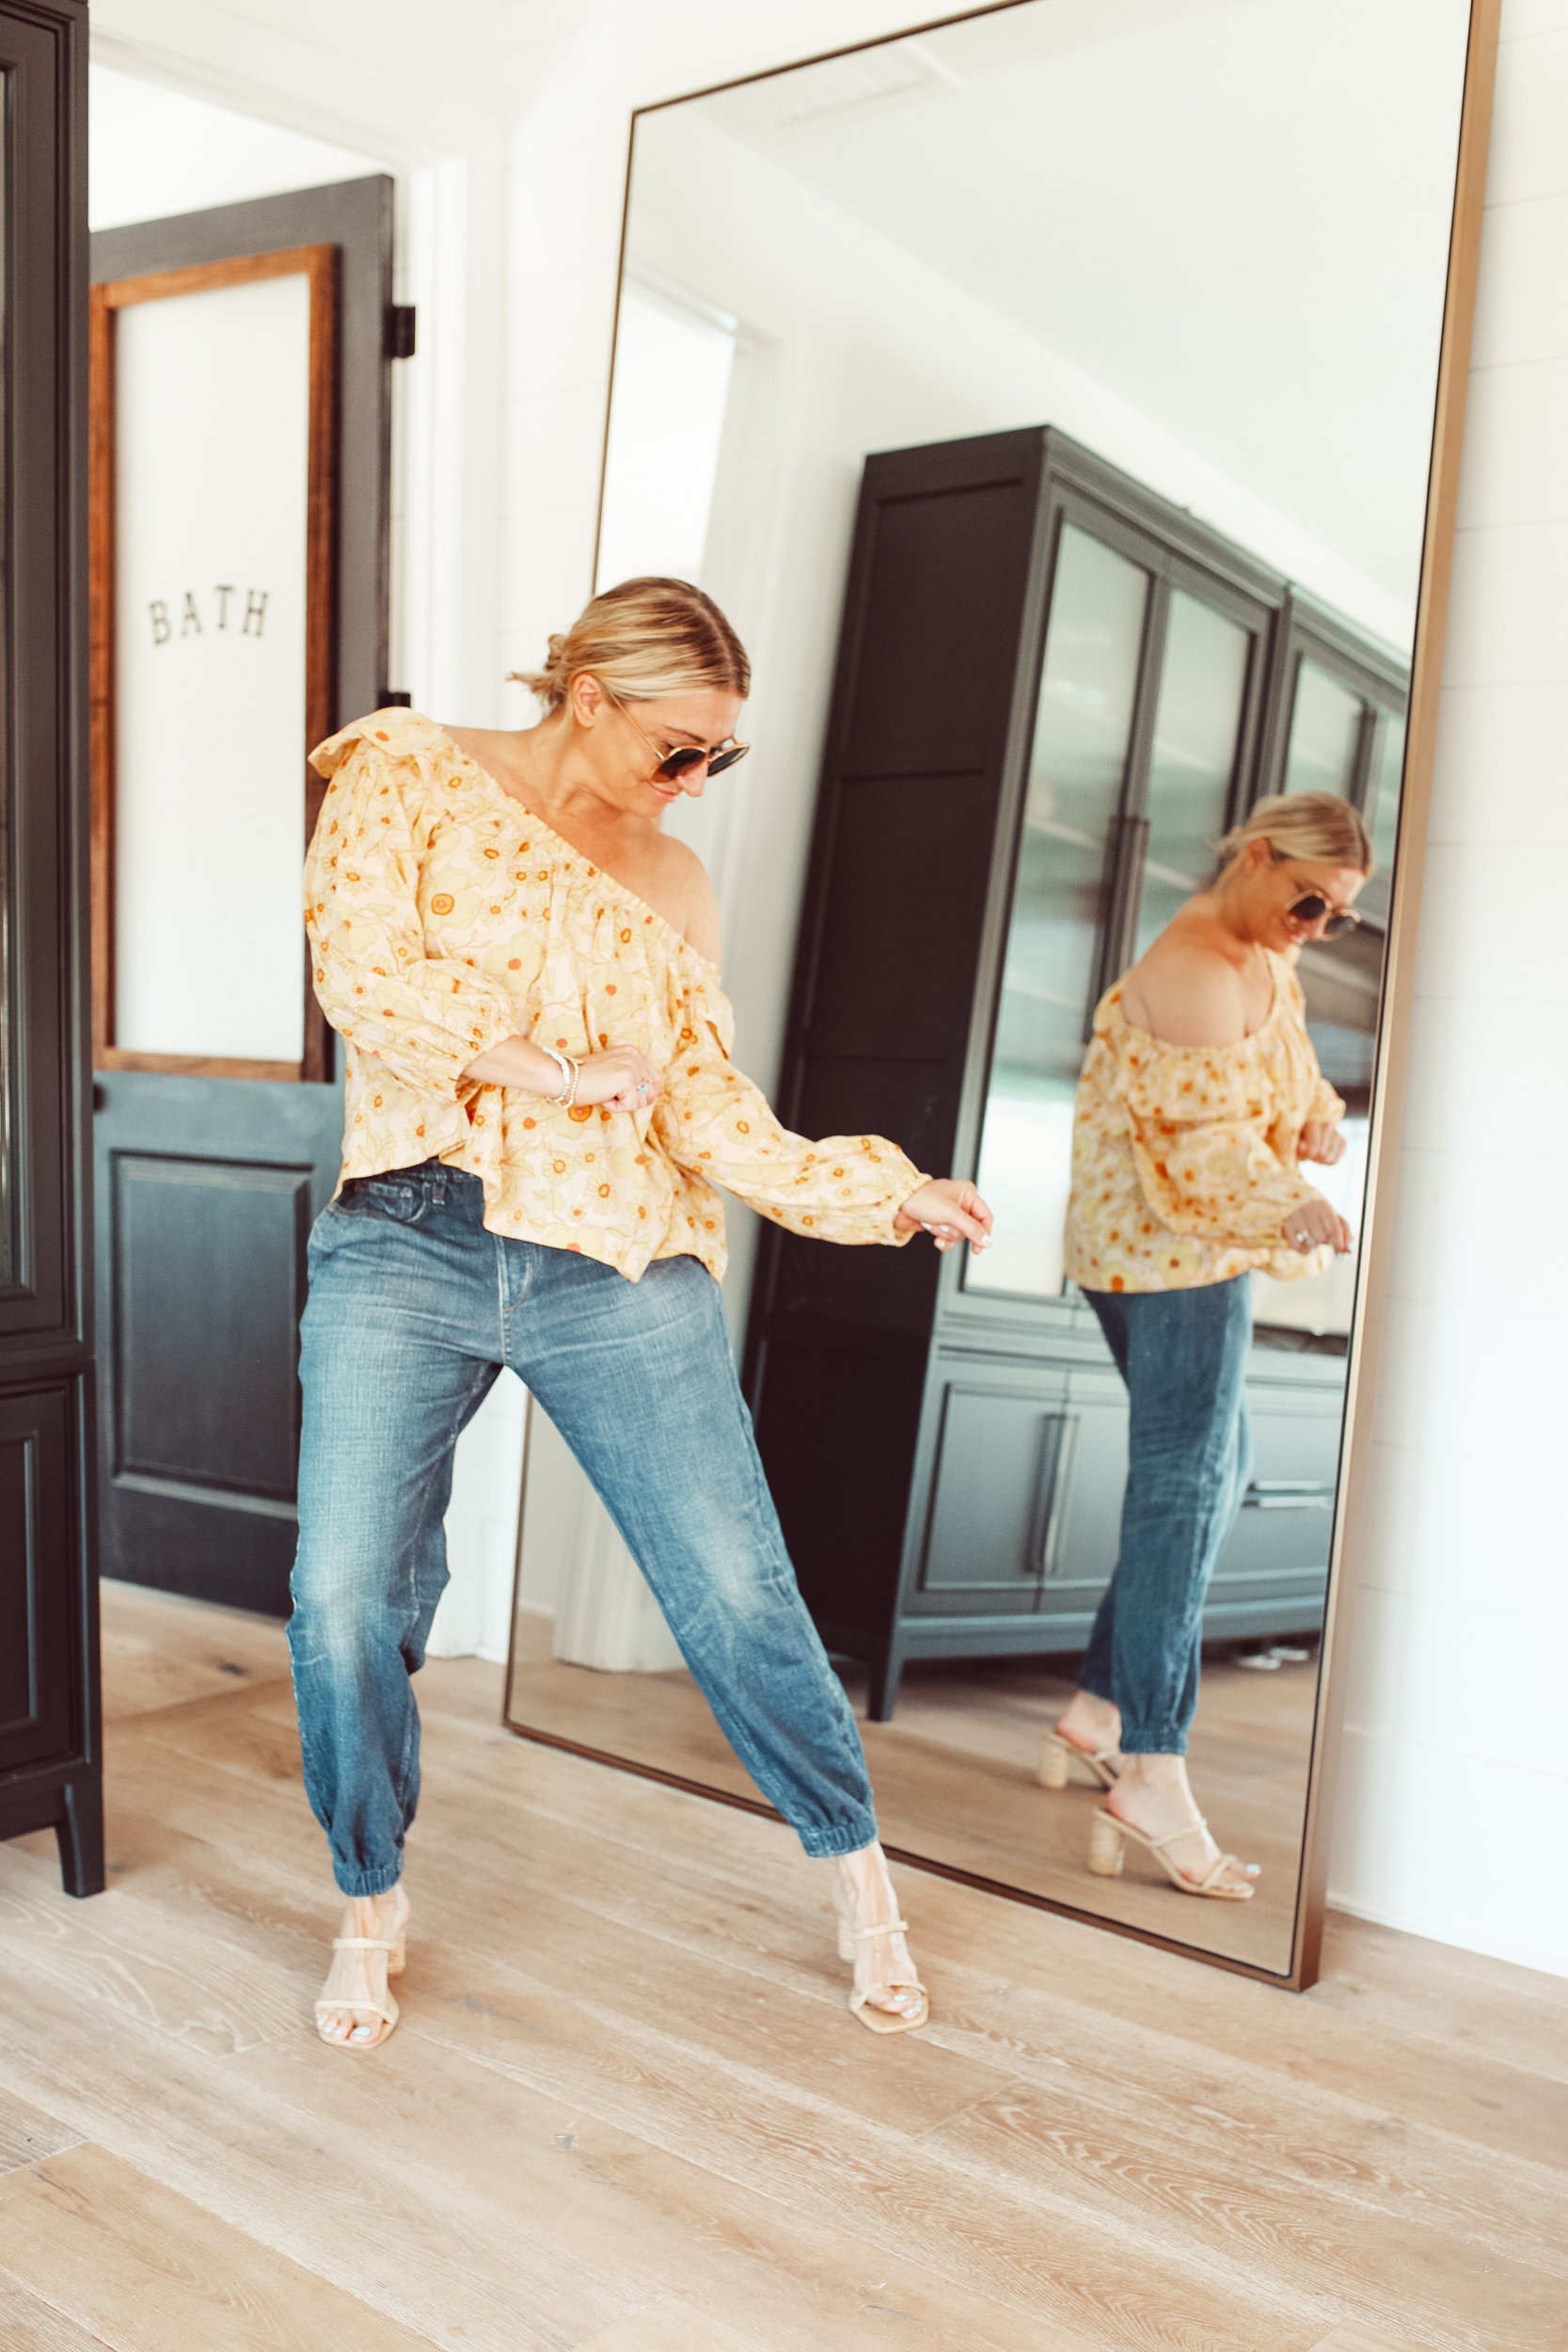 woman dancing by mirror